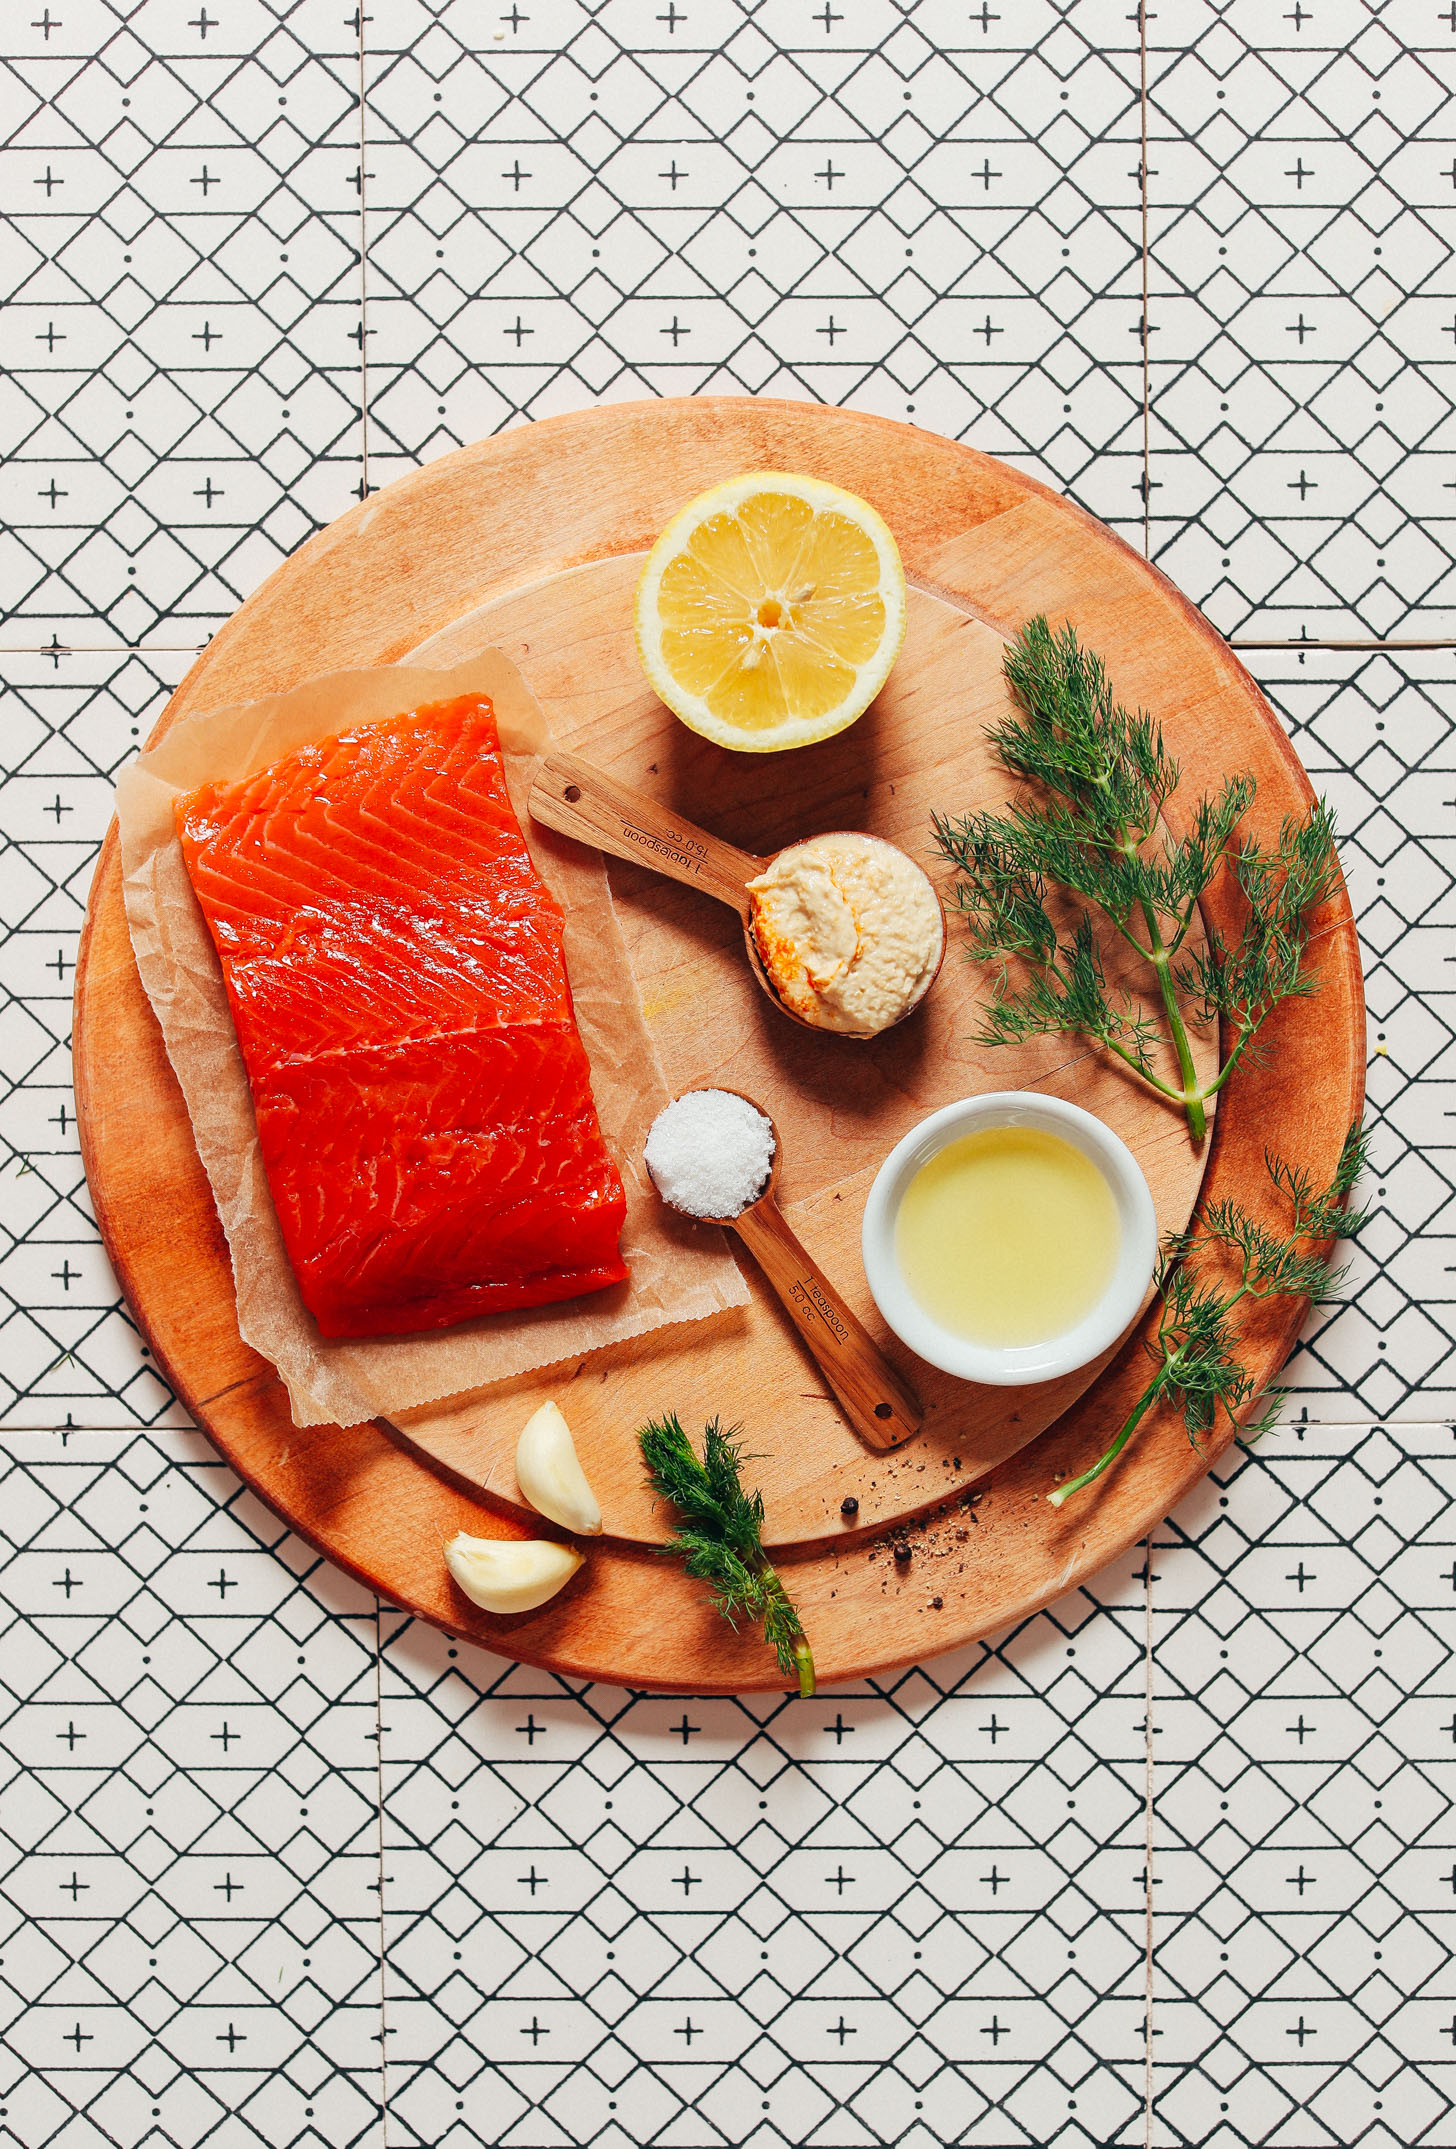 Wood cutting board with vibrant wild-caught salmon, garlic, dill, lemon, and other ingredients for making a delicious salmon recipe